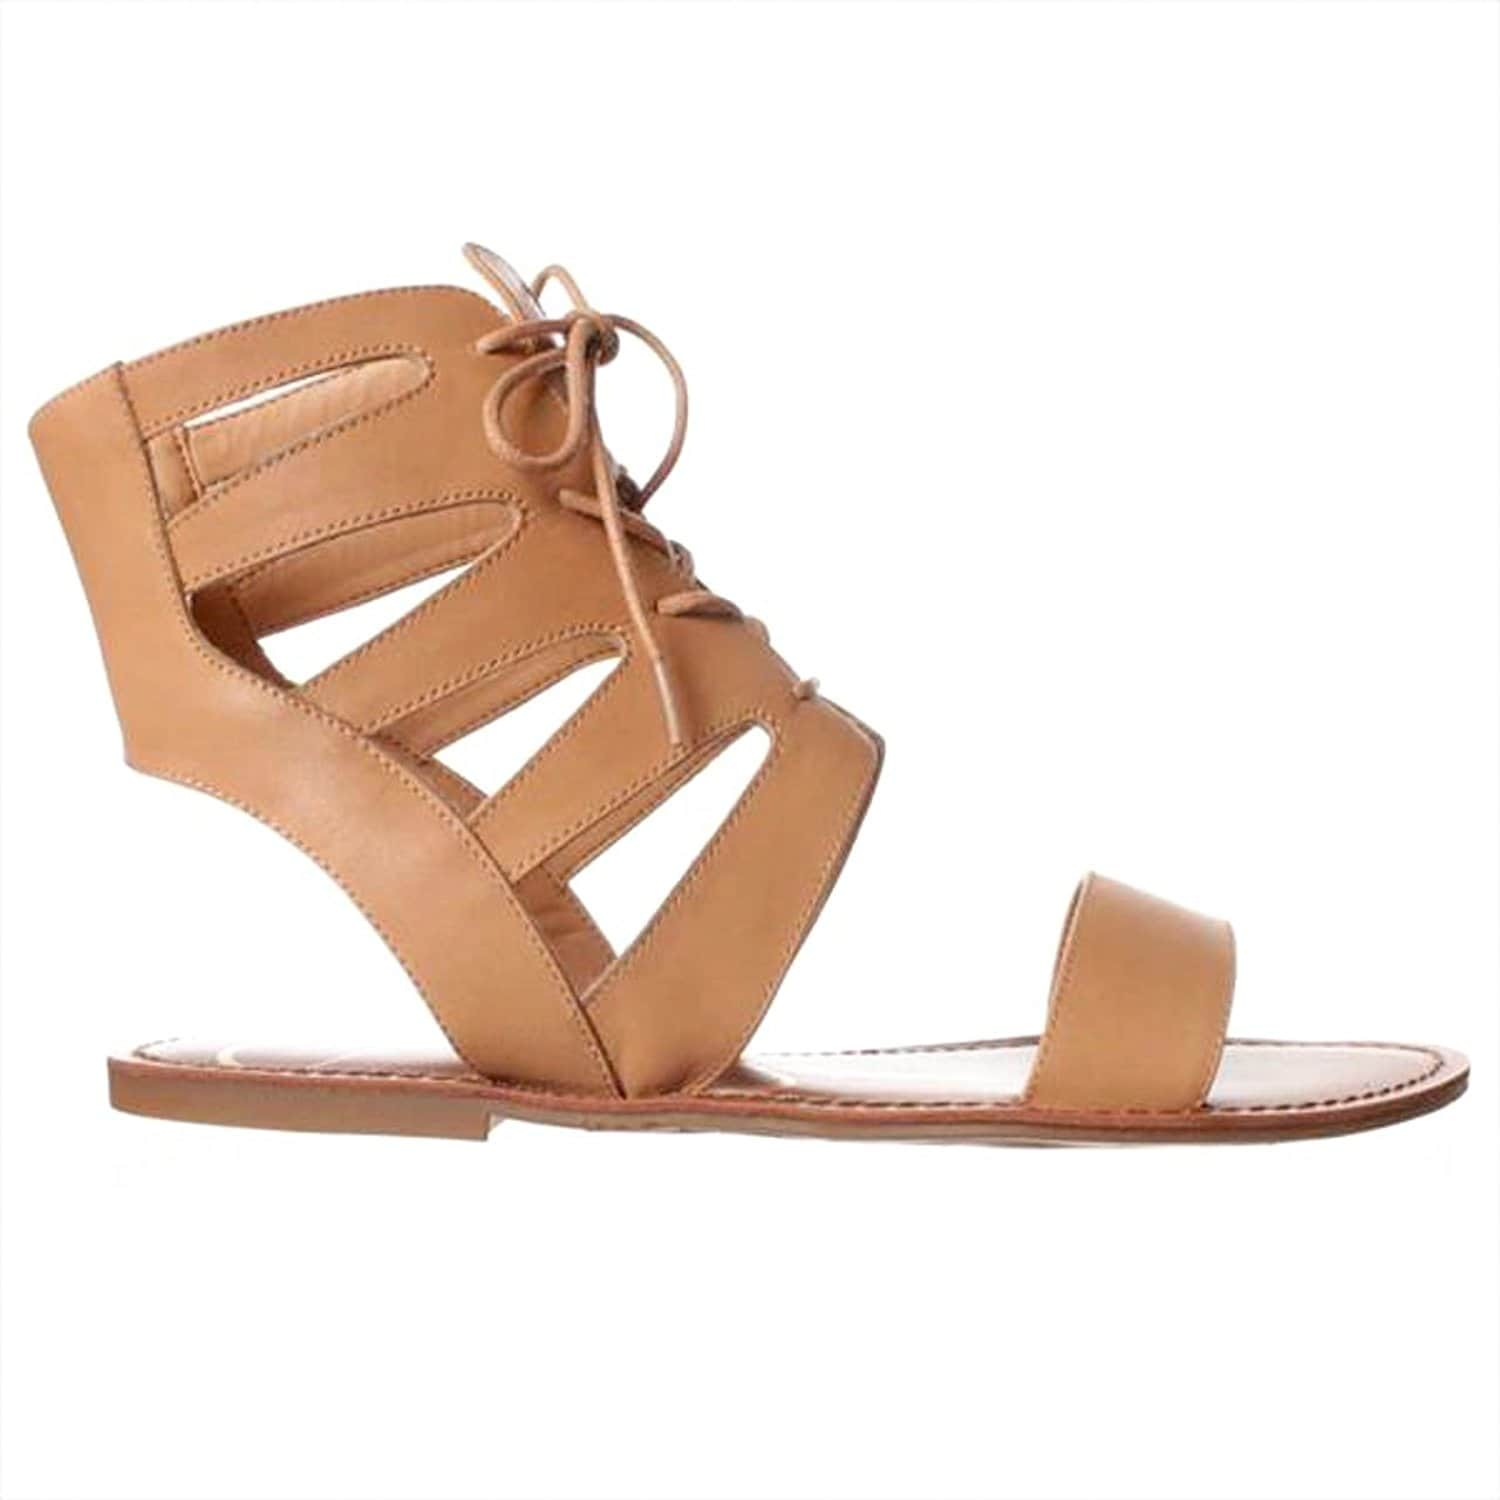 2c136eaa48a2 Shop Jessica Simpson Womens Open Toe Casual Gladiator Sandals - 6.5 - Free  Shipping On Orders Over  45 - Overstock - 15668272